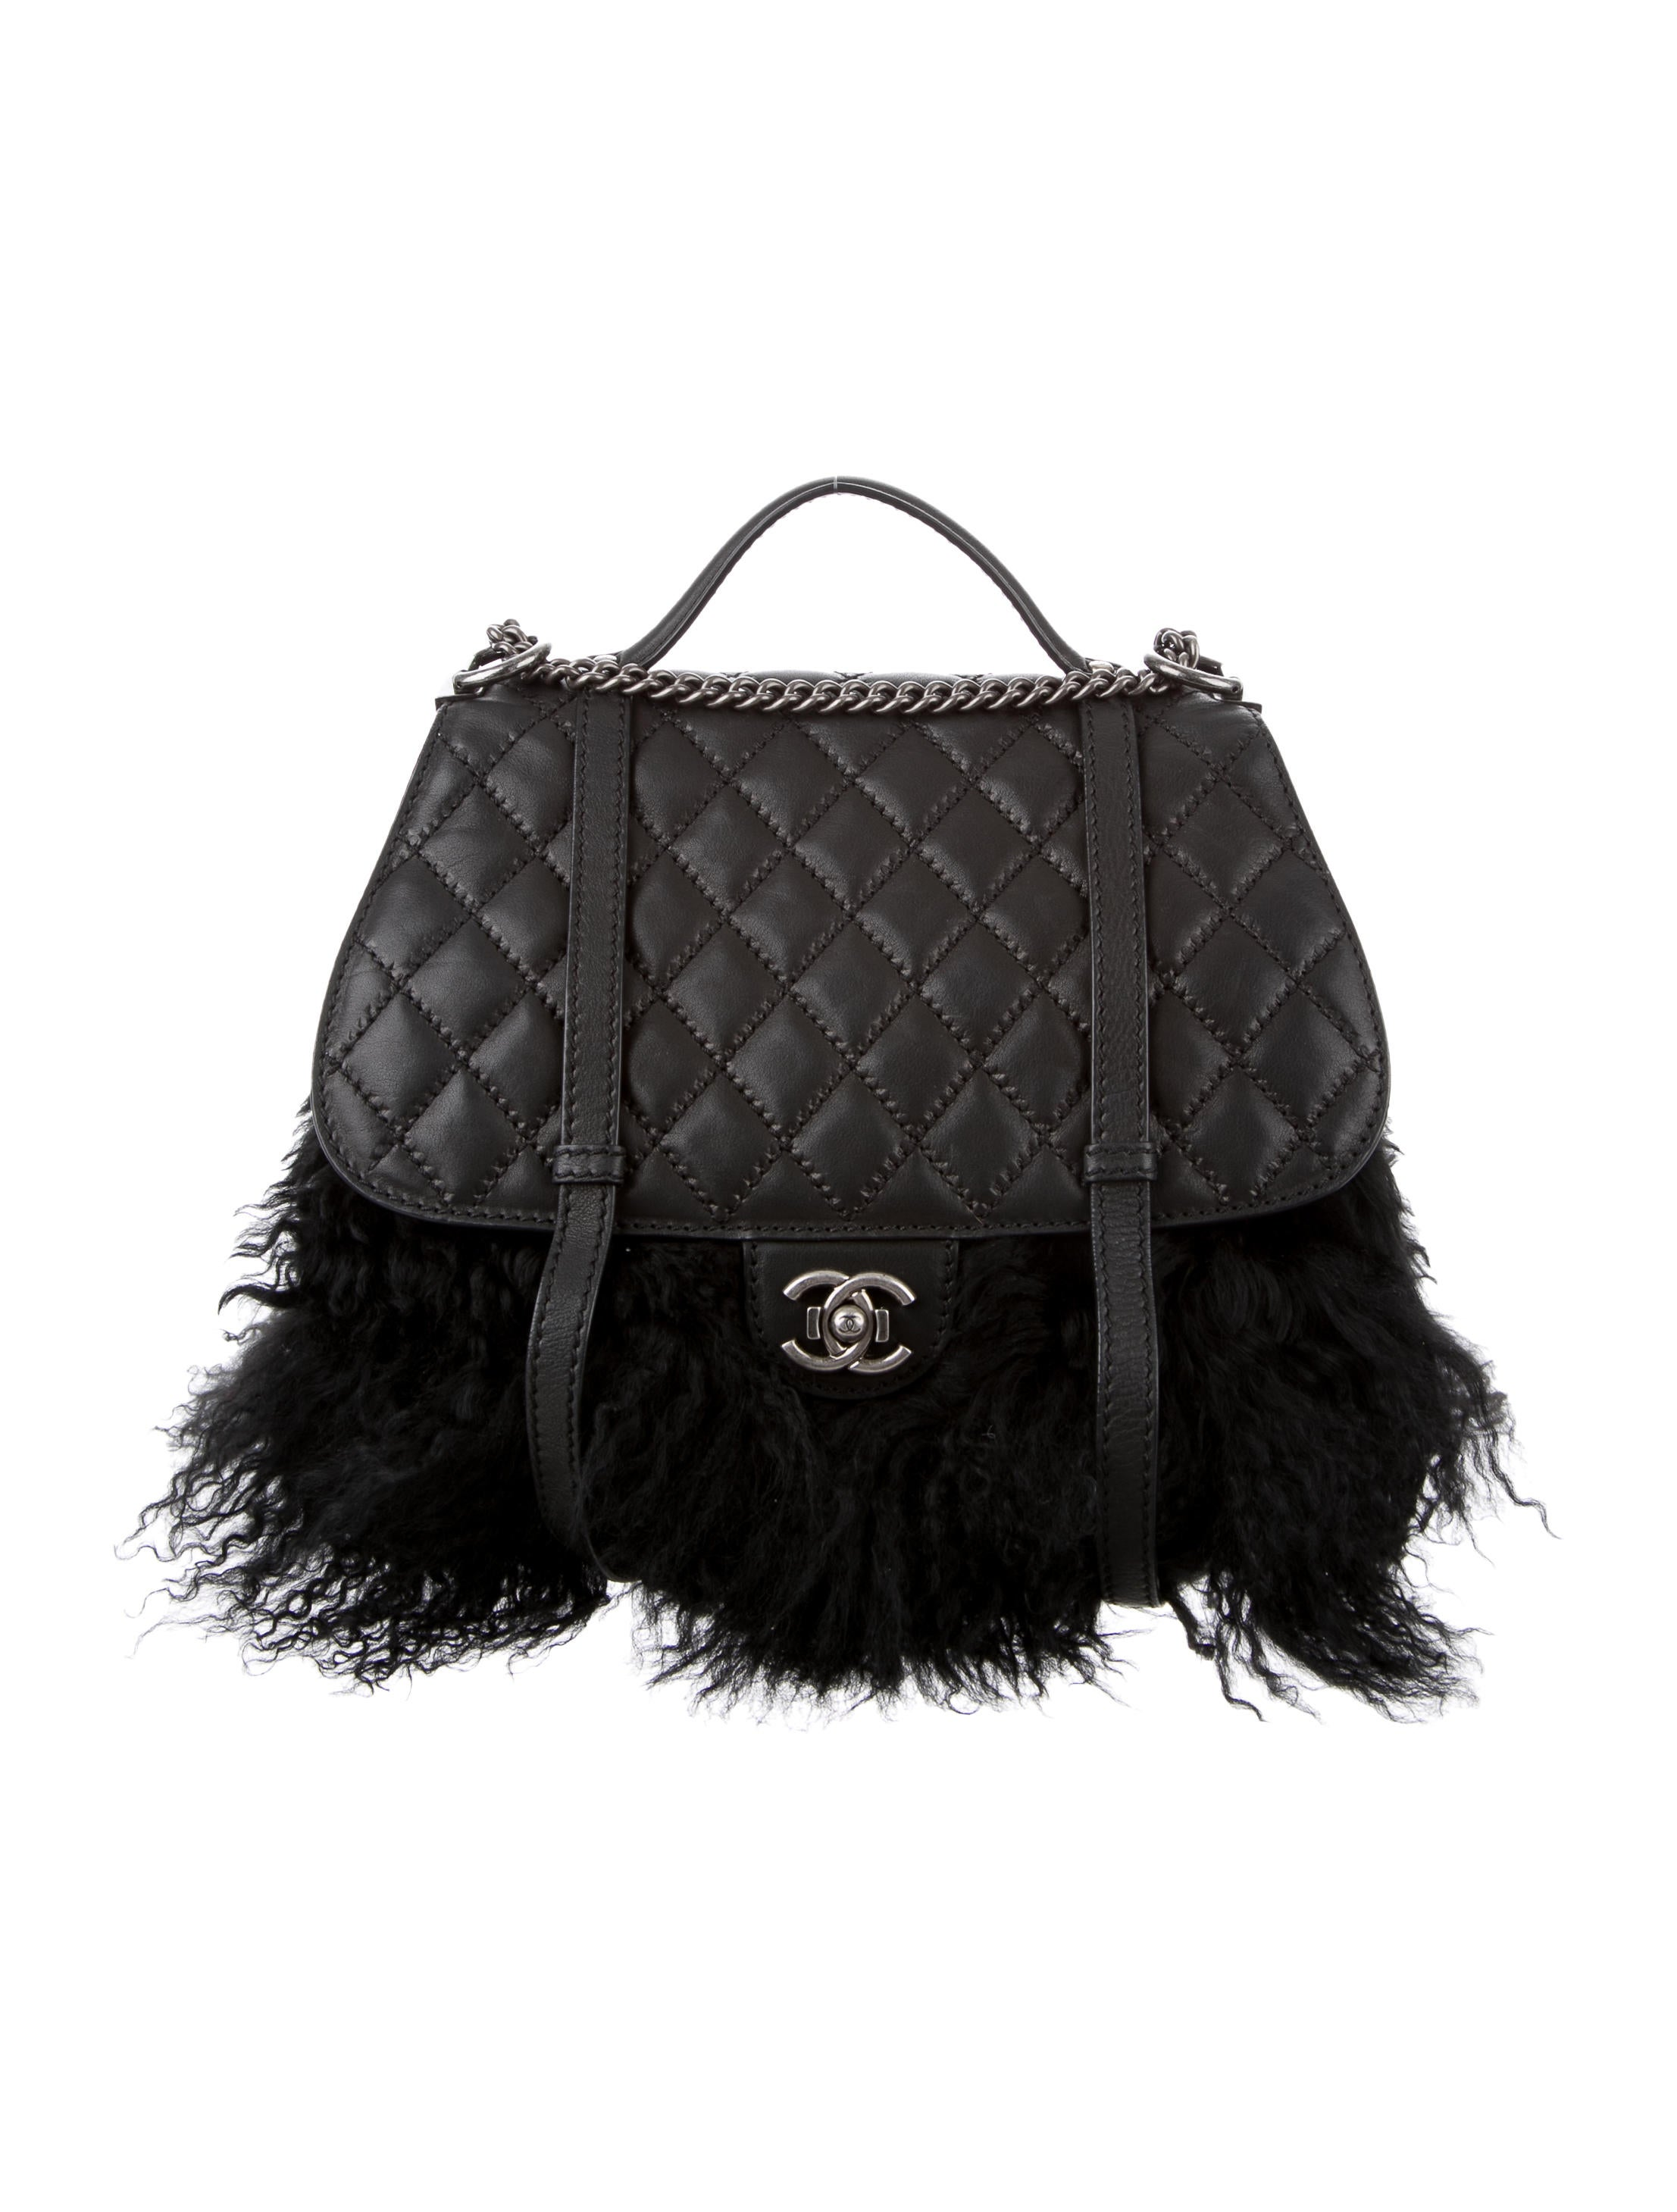 177b811b3b6f Chanel Flap Bag Fur Collection | Stanford Center for Opportunity ...